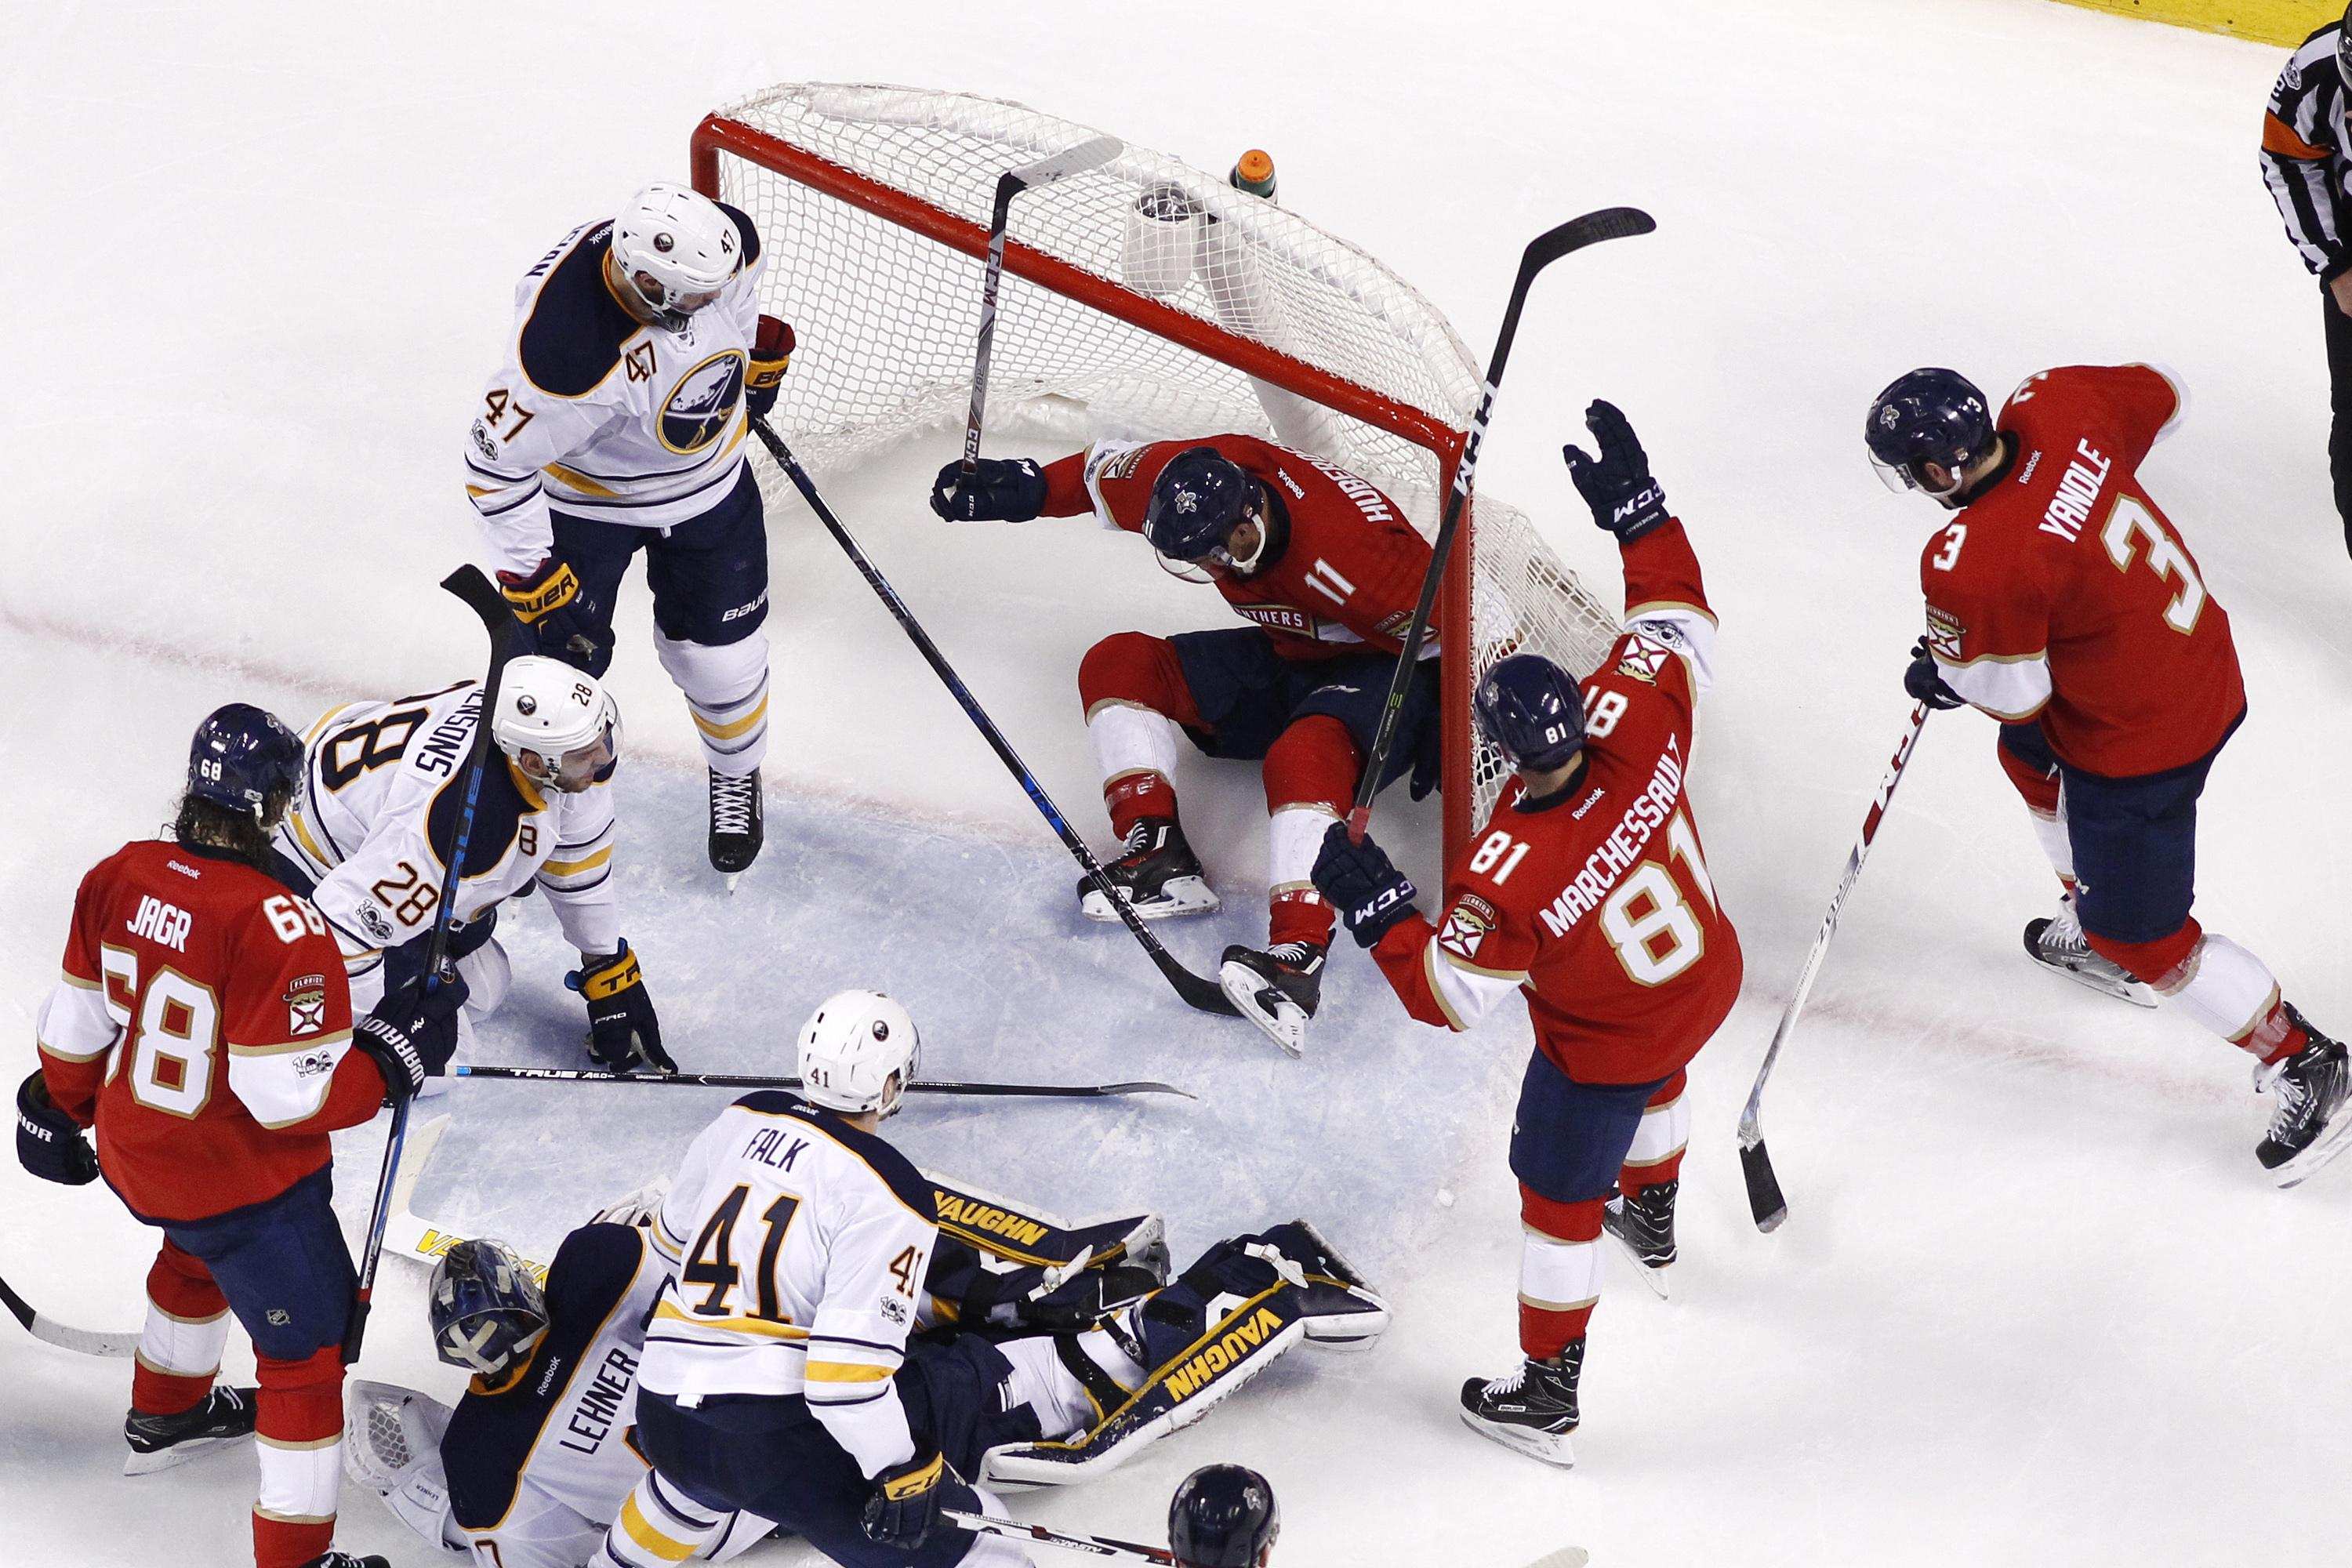 Sabres_panthers_hockey_26744